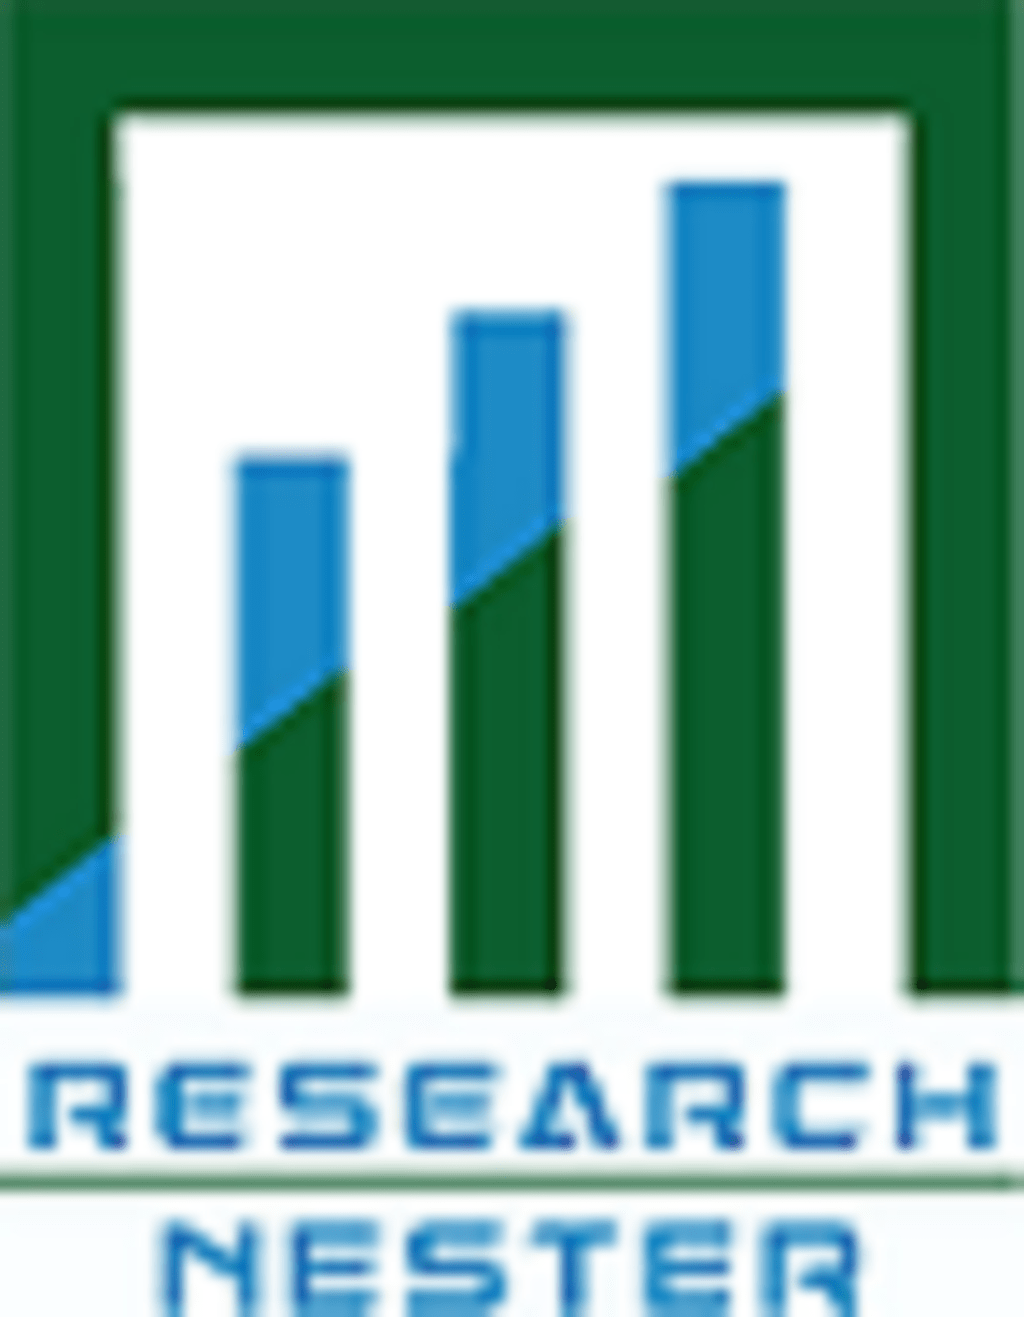 Military Simulation and Virtual Training To Help Reduce Training Costs on Military Personnel – Global Military Simulation and Virtual Training Market To Grow By A Notable CAGR During 2020 – 2028